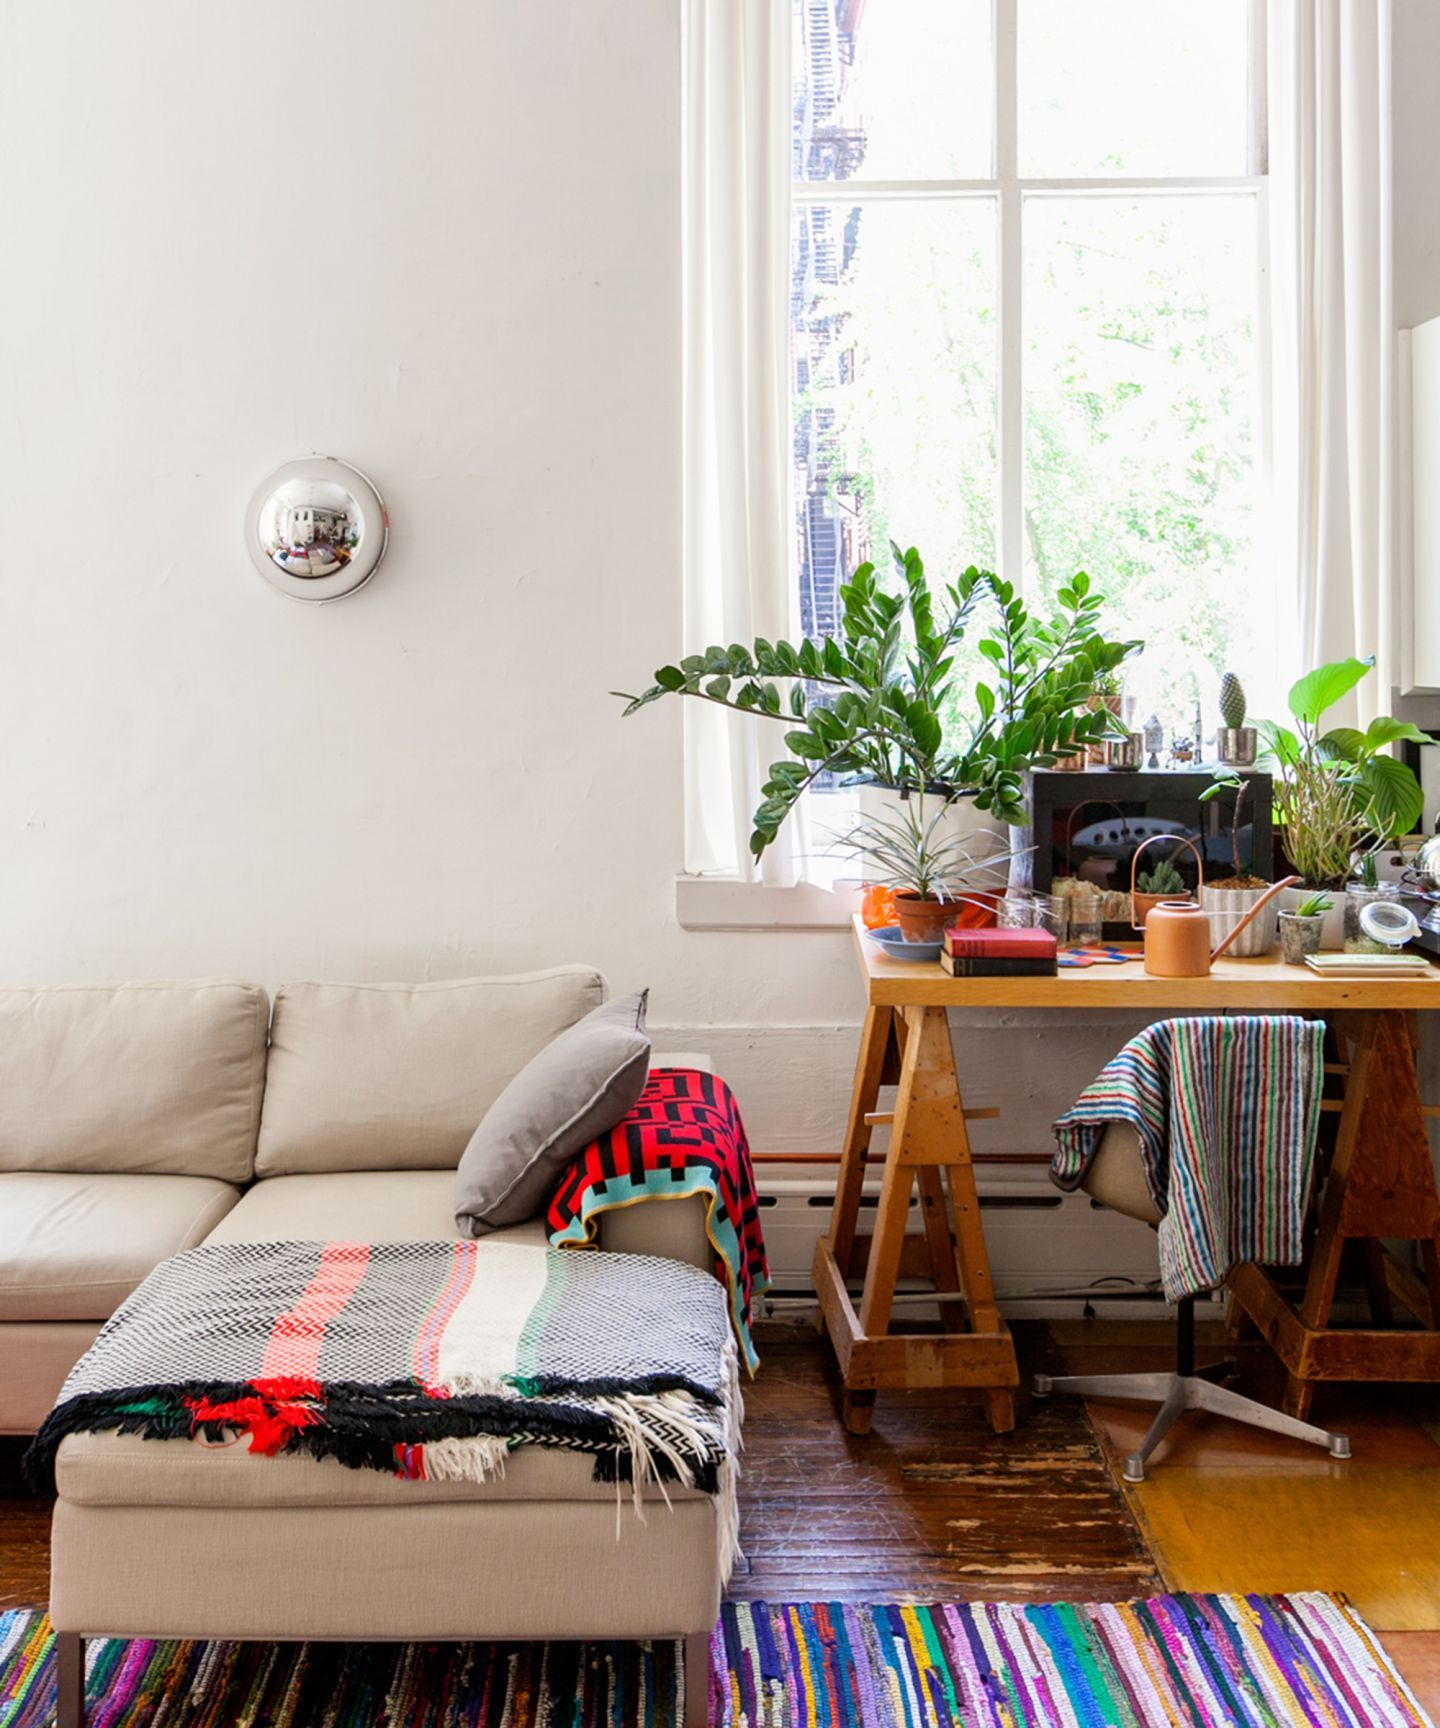 7 Easy Hacks To Turn Your Tiny Studio Into A Palace ...